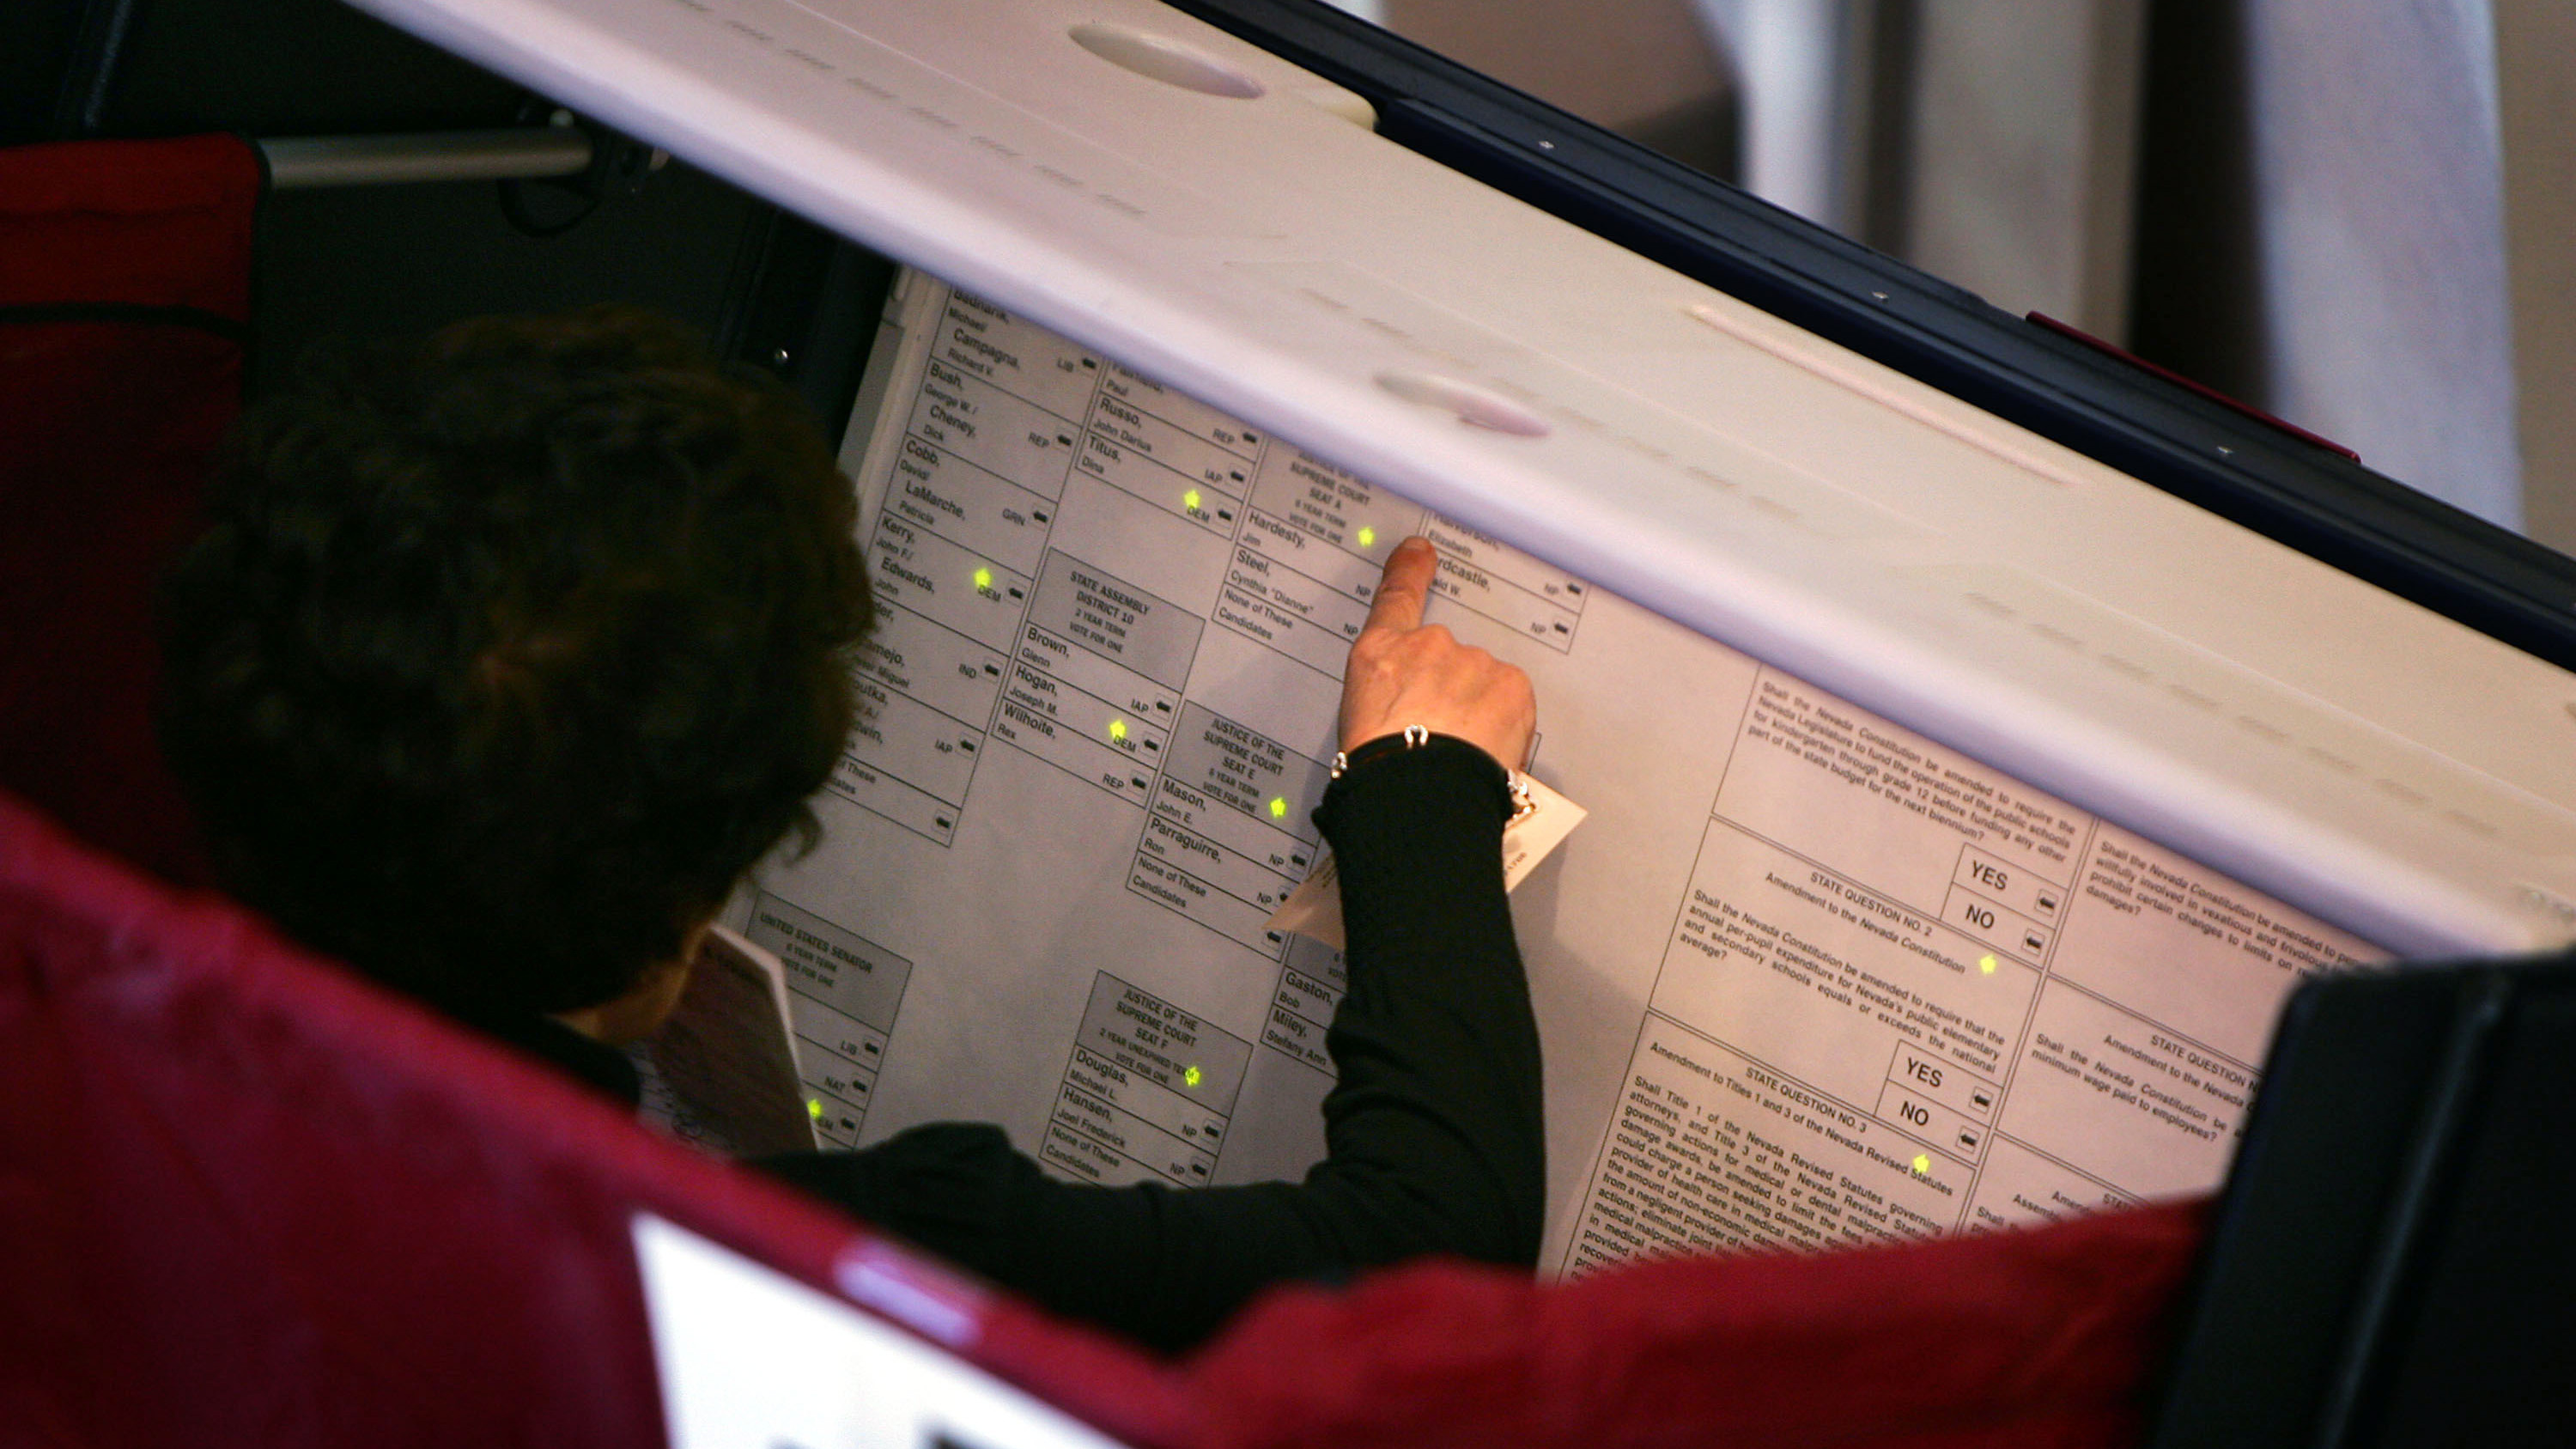 Old voting machines in the US can be hacked without people knowing it recommendations